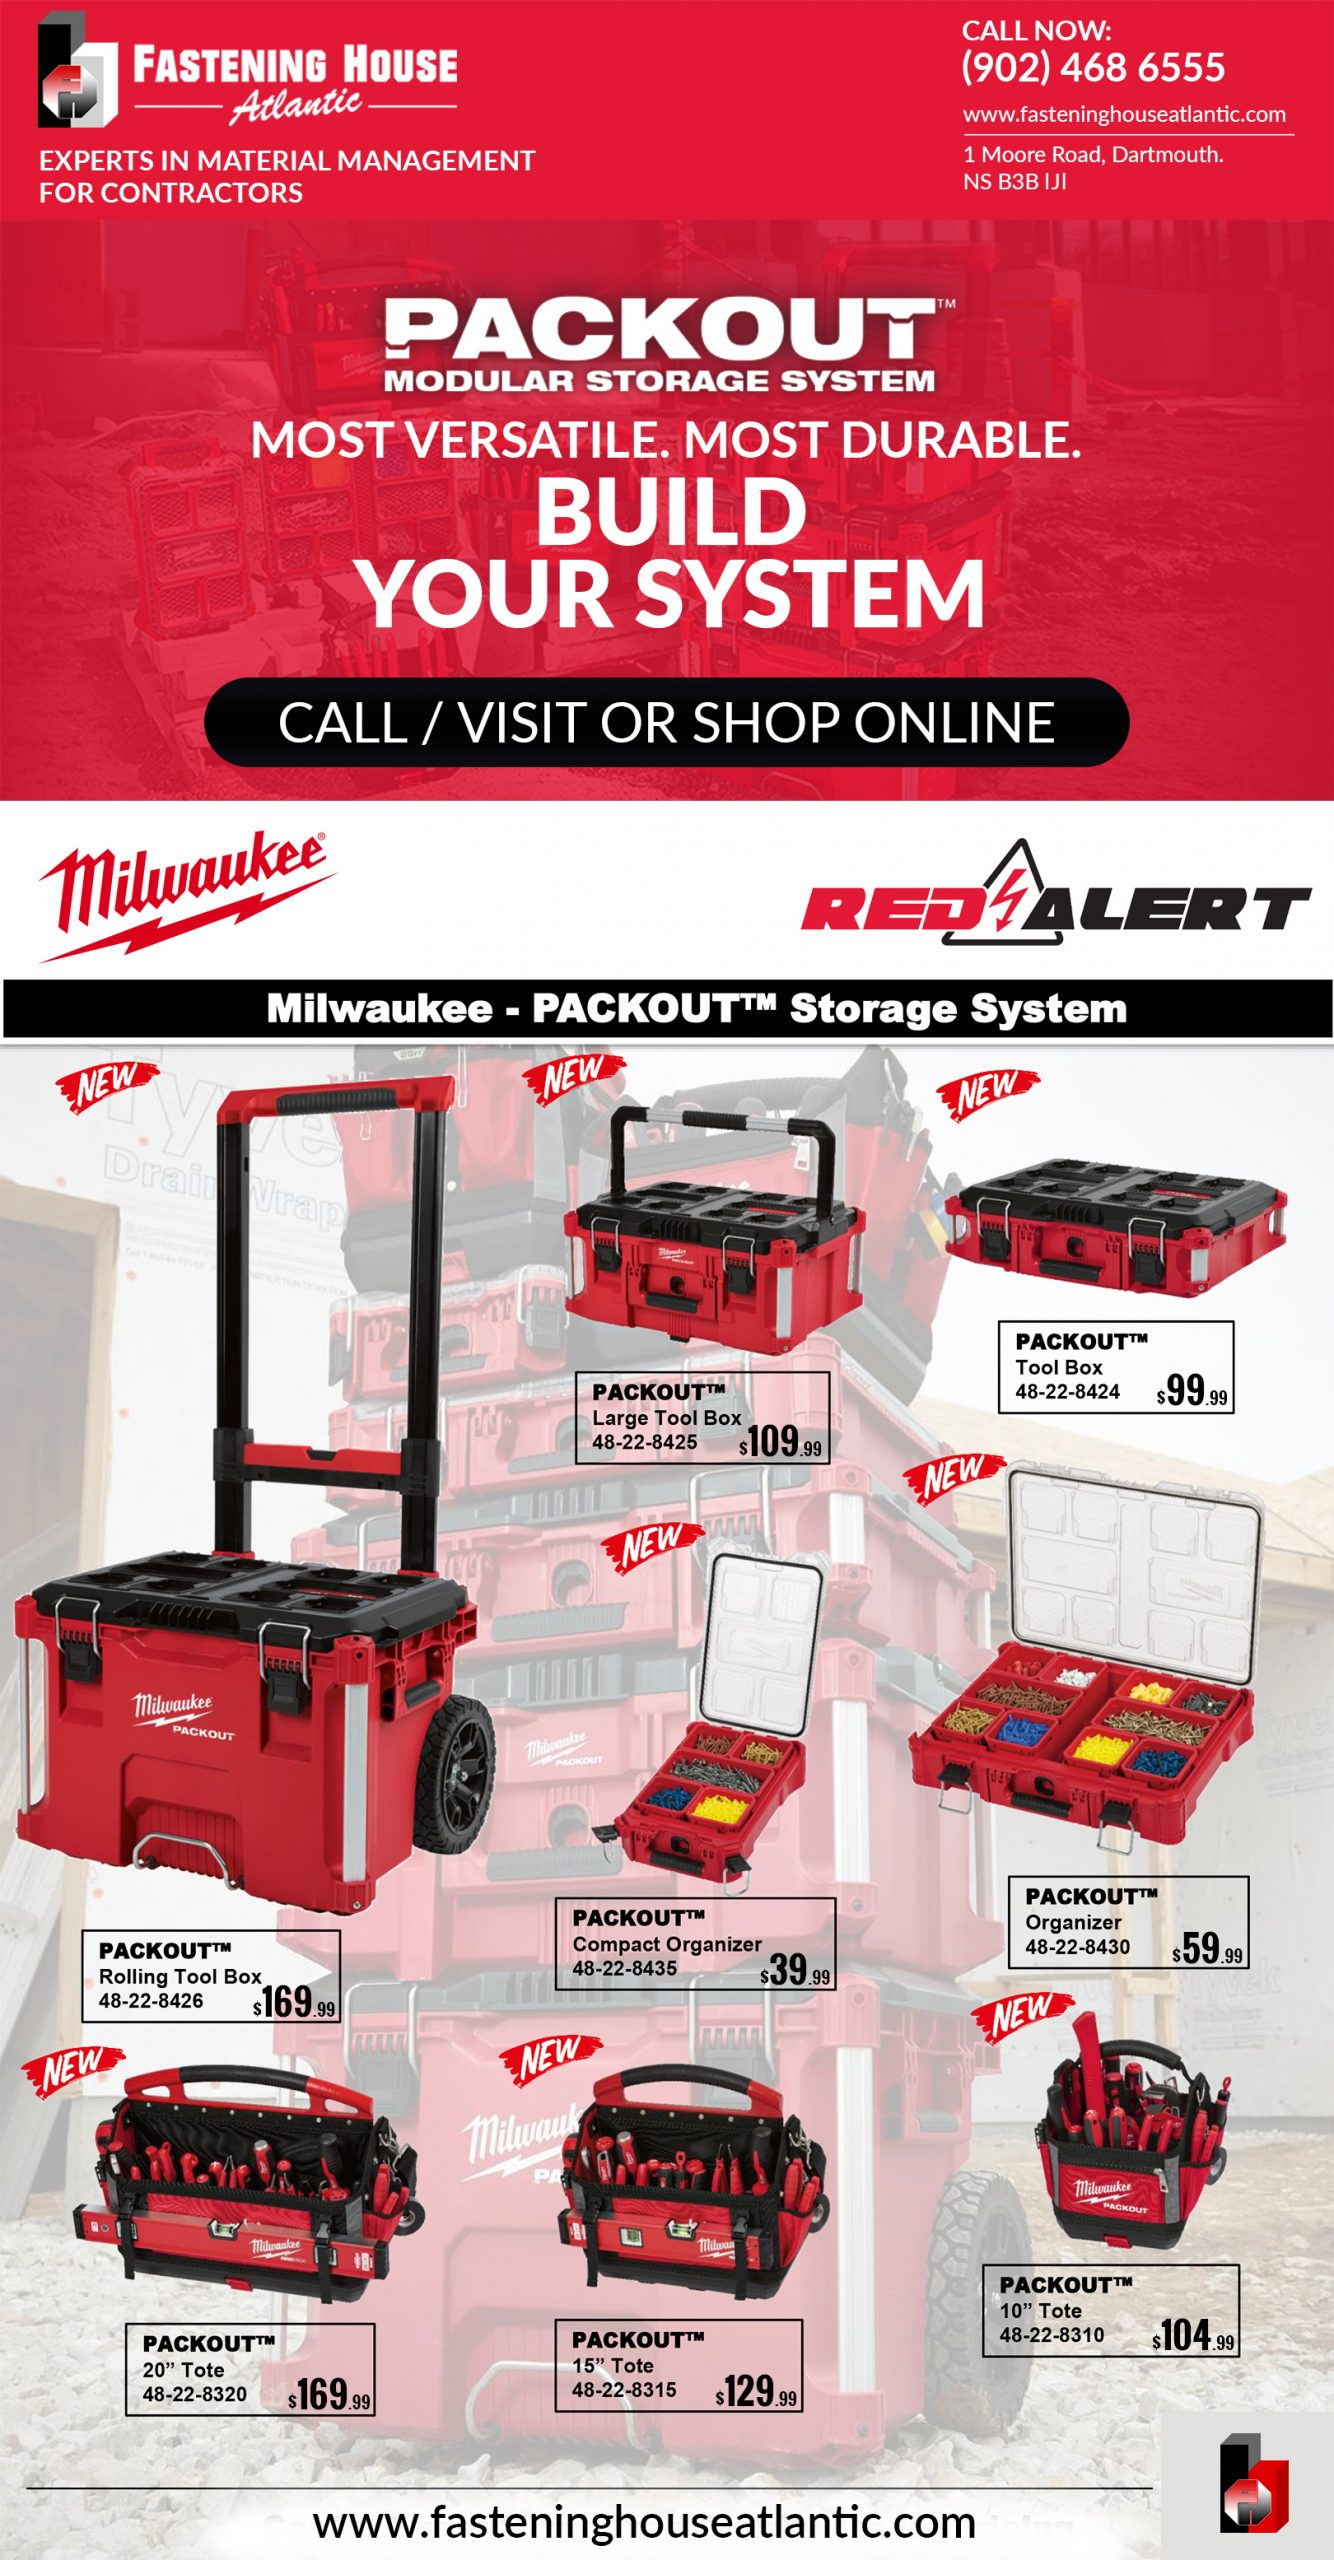 PROMOTION-MIlWAUKEE PACKOUT MODULAR STORAGE SYSTEM